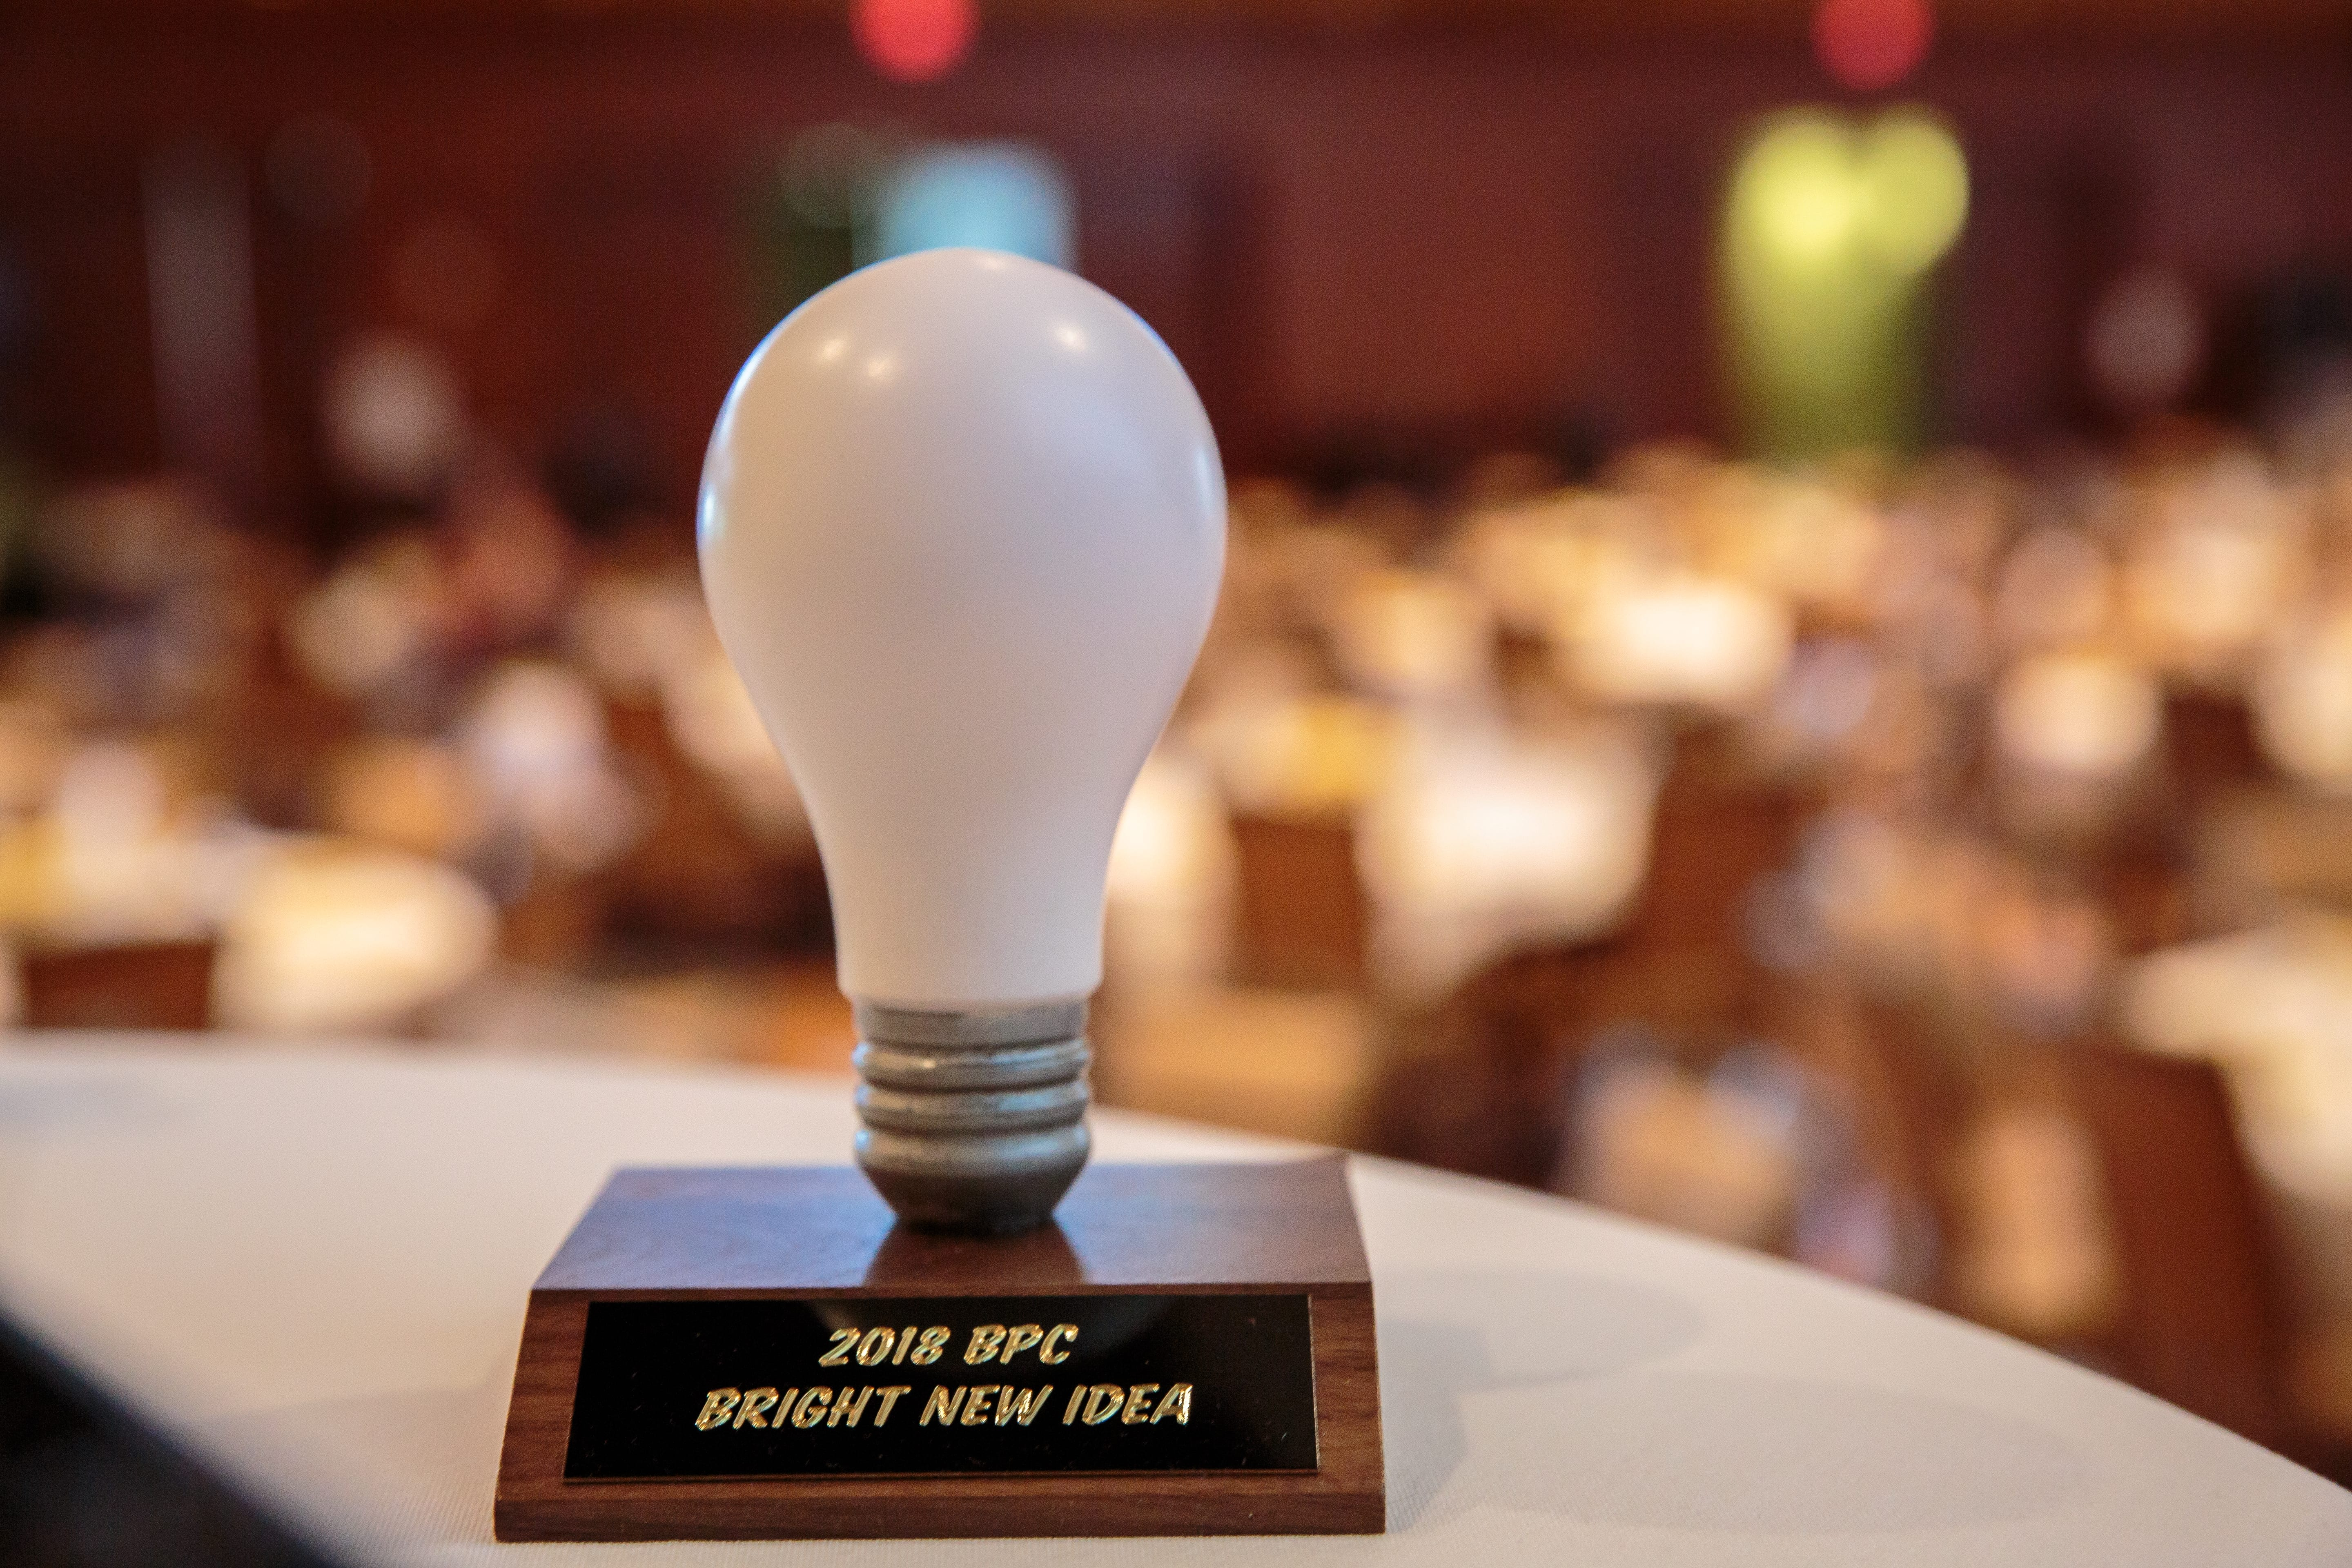 Bright New Idea award